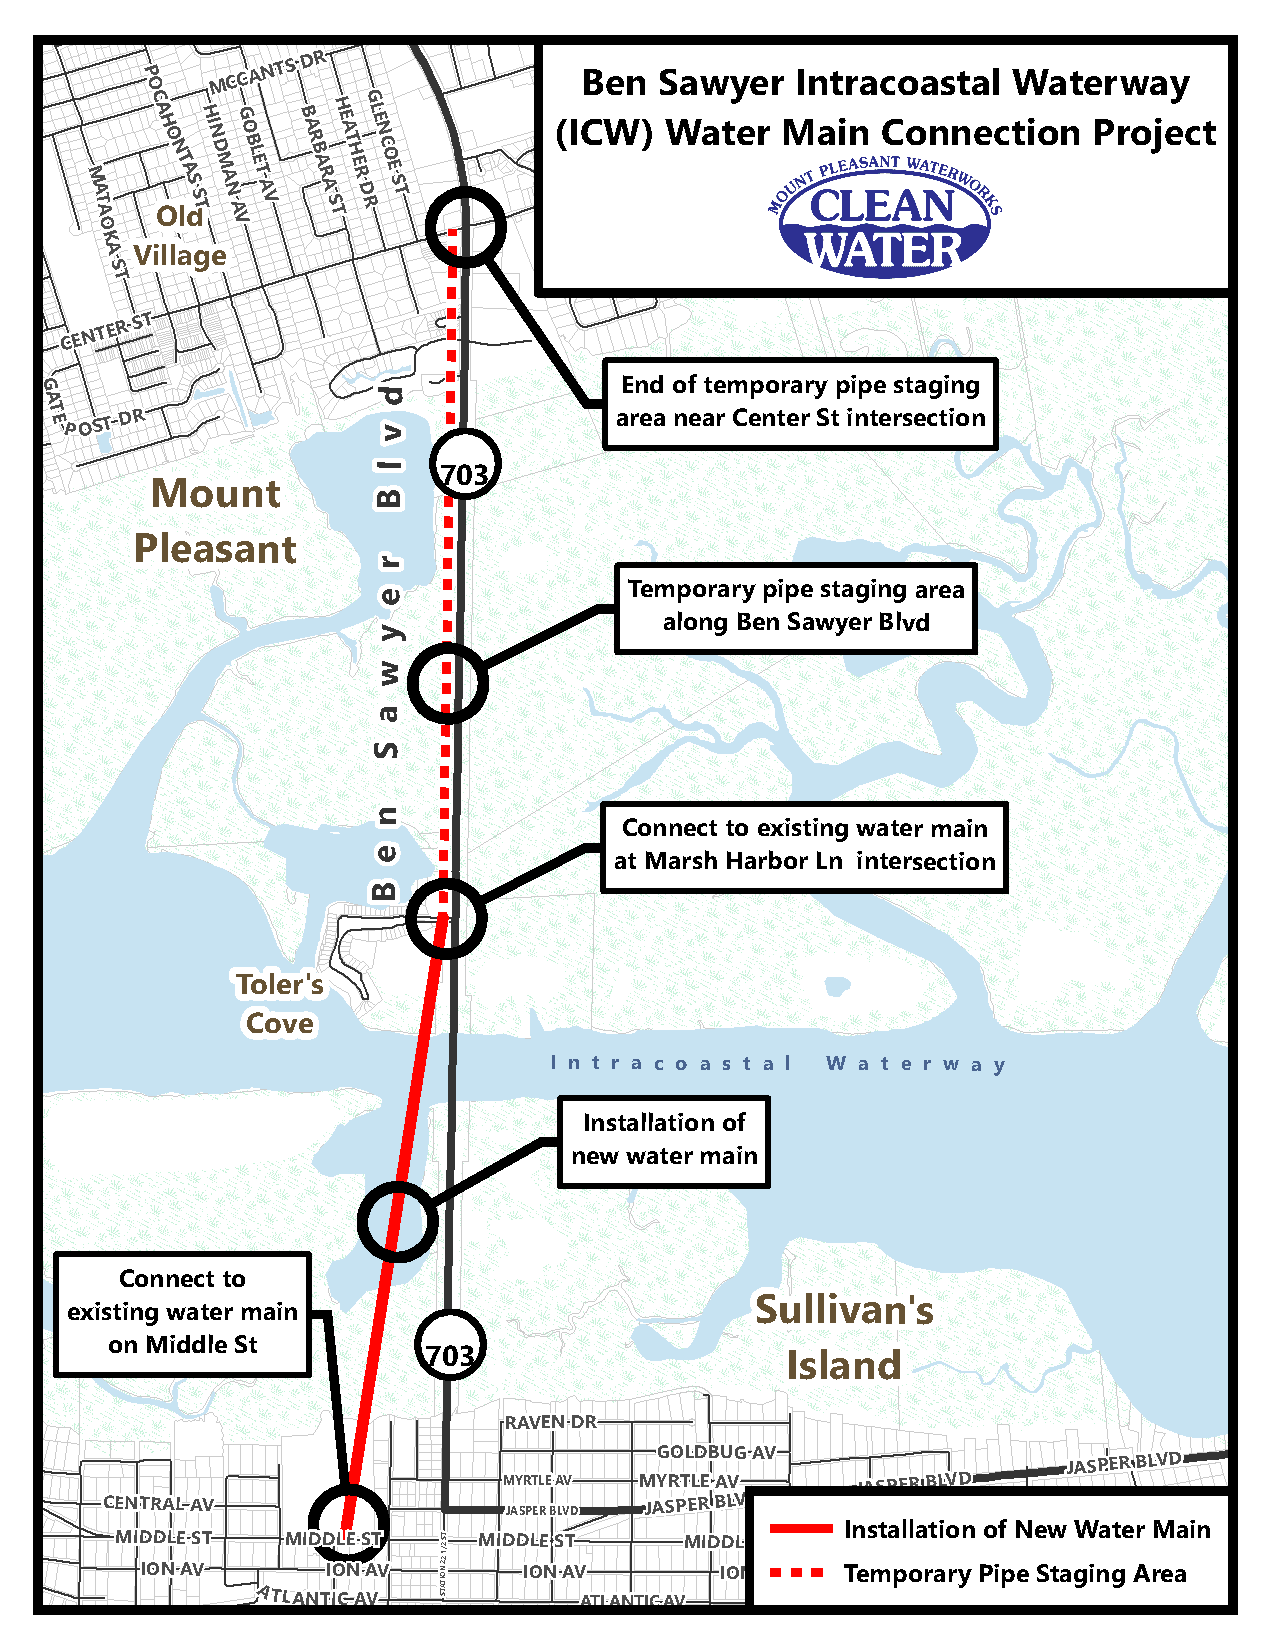 Ben Sawyer ICW Water Main Connection Project Area Map